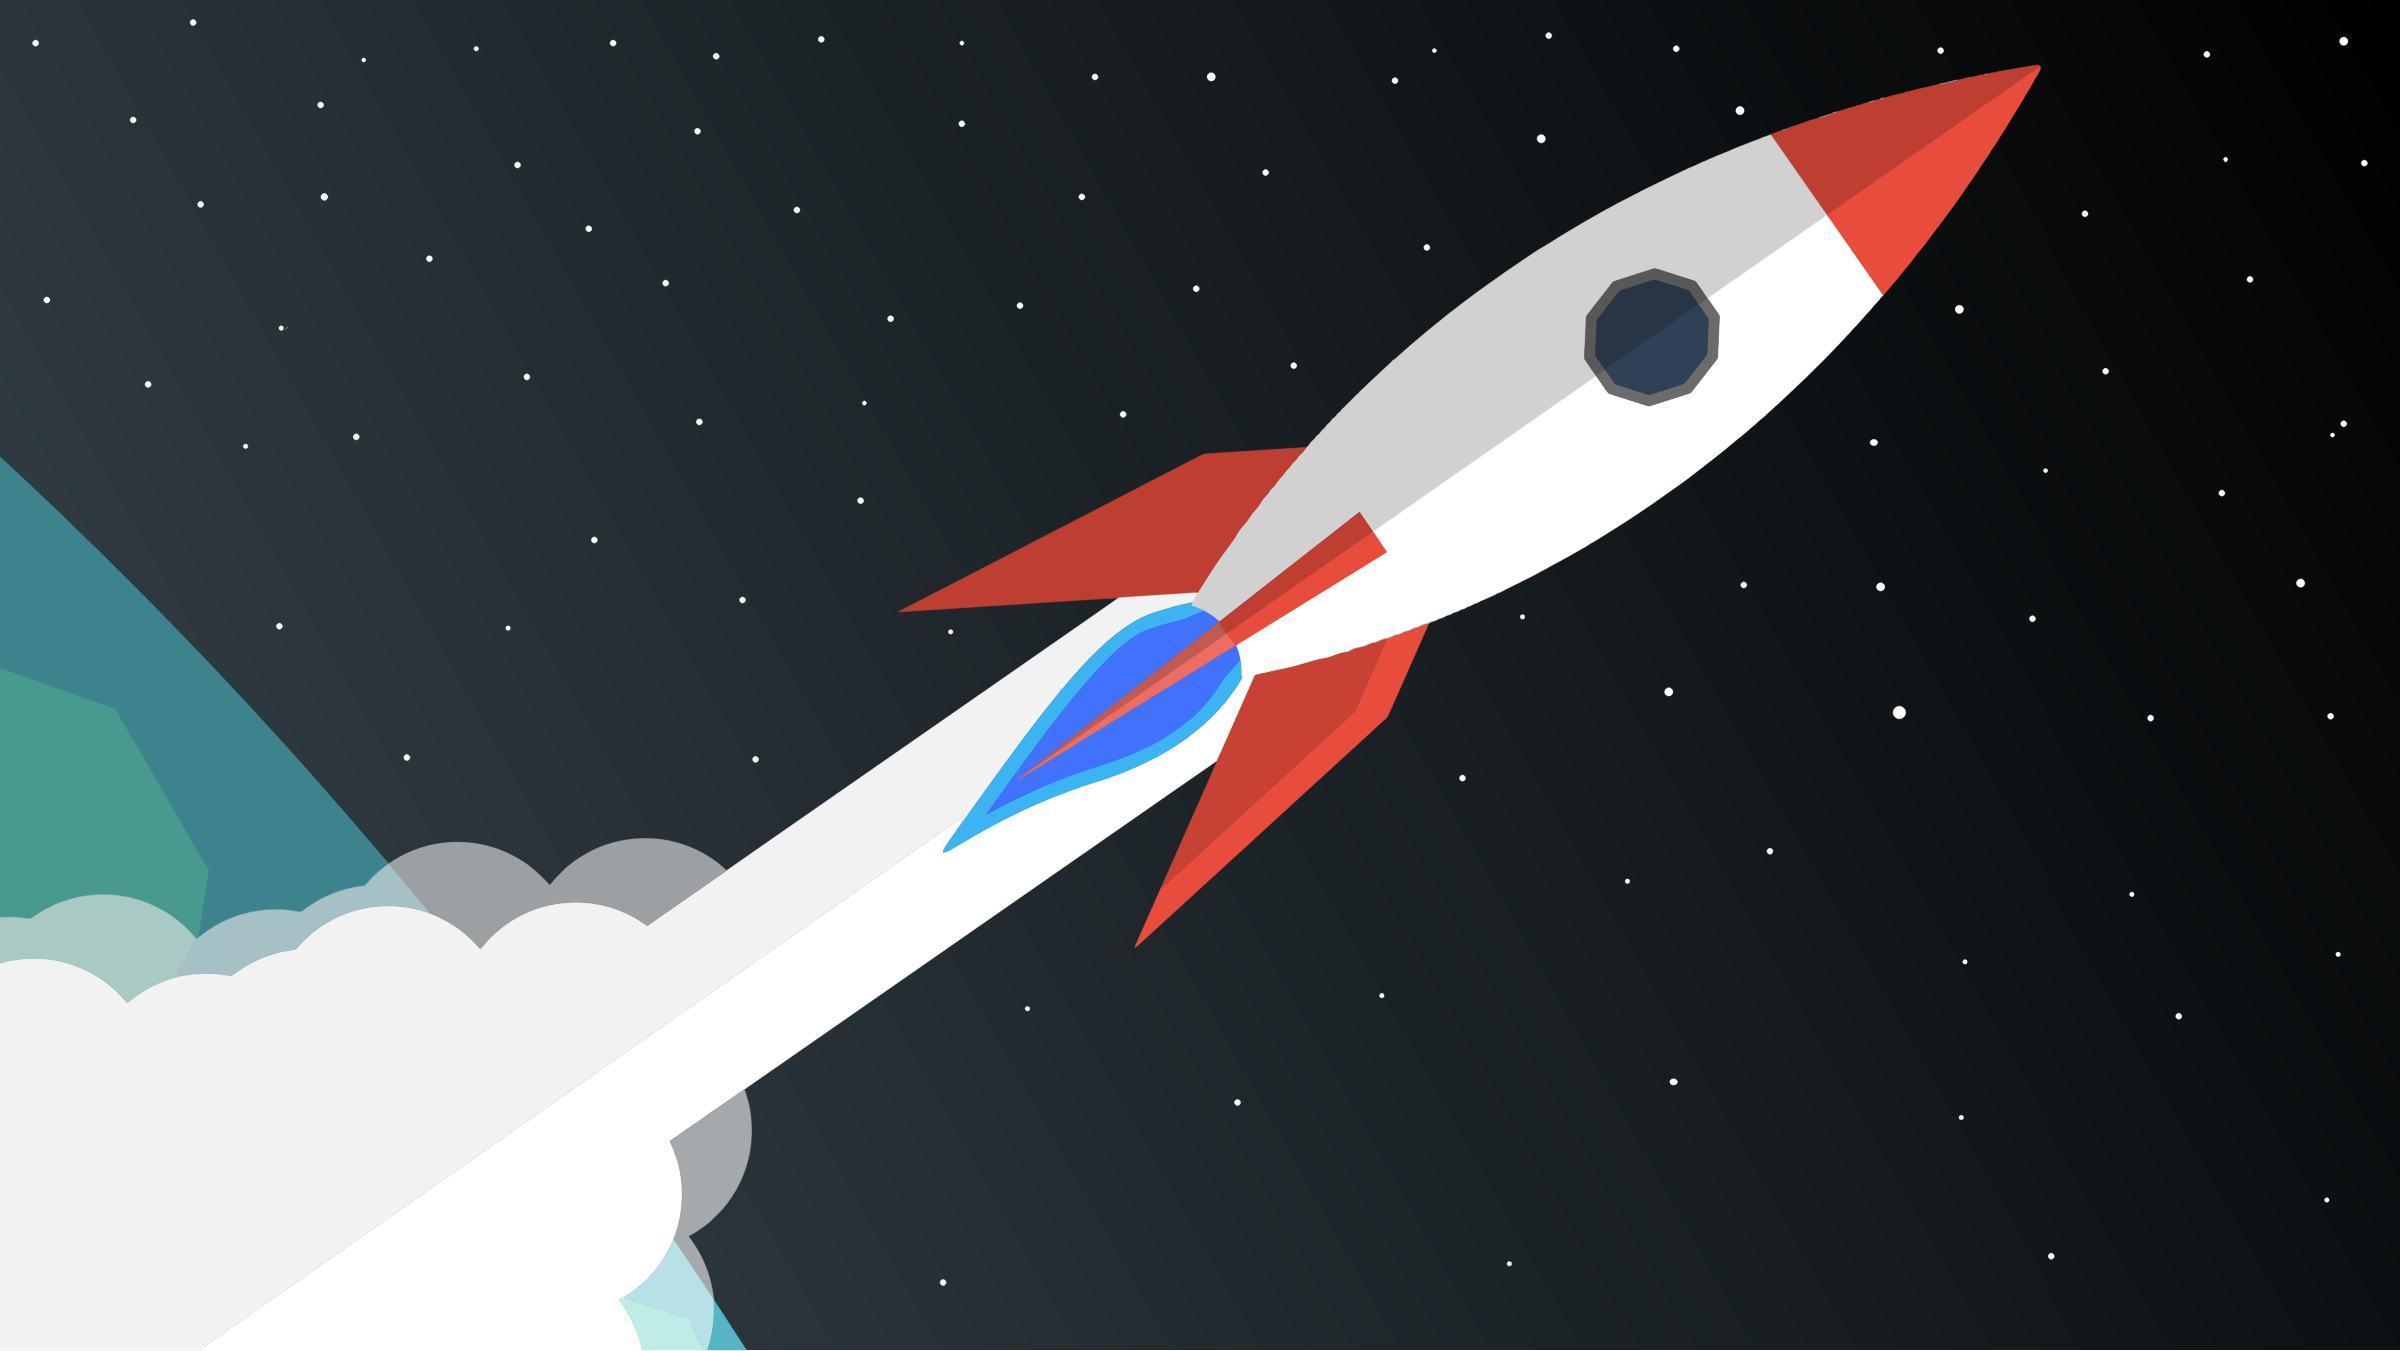 Rocket Blasting Off Into Space vector clipart image.